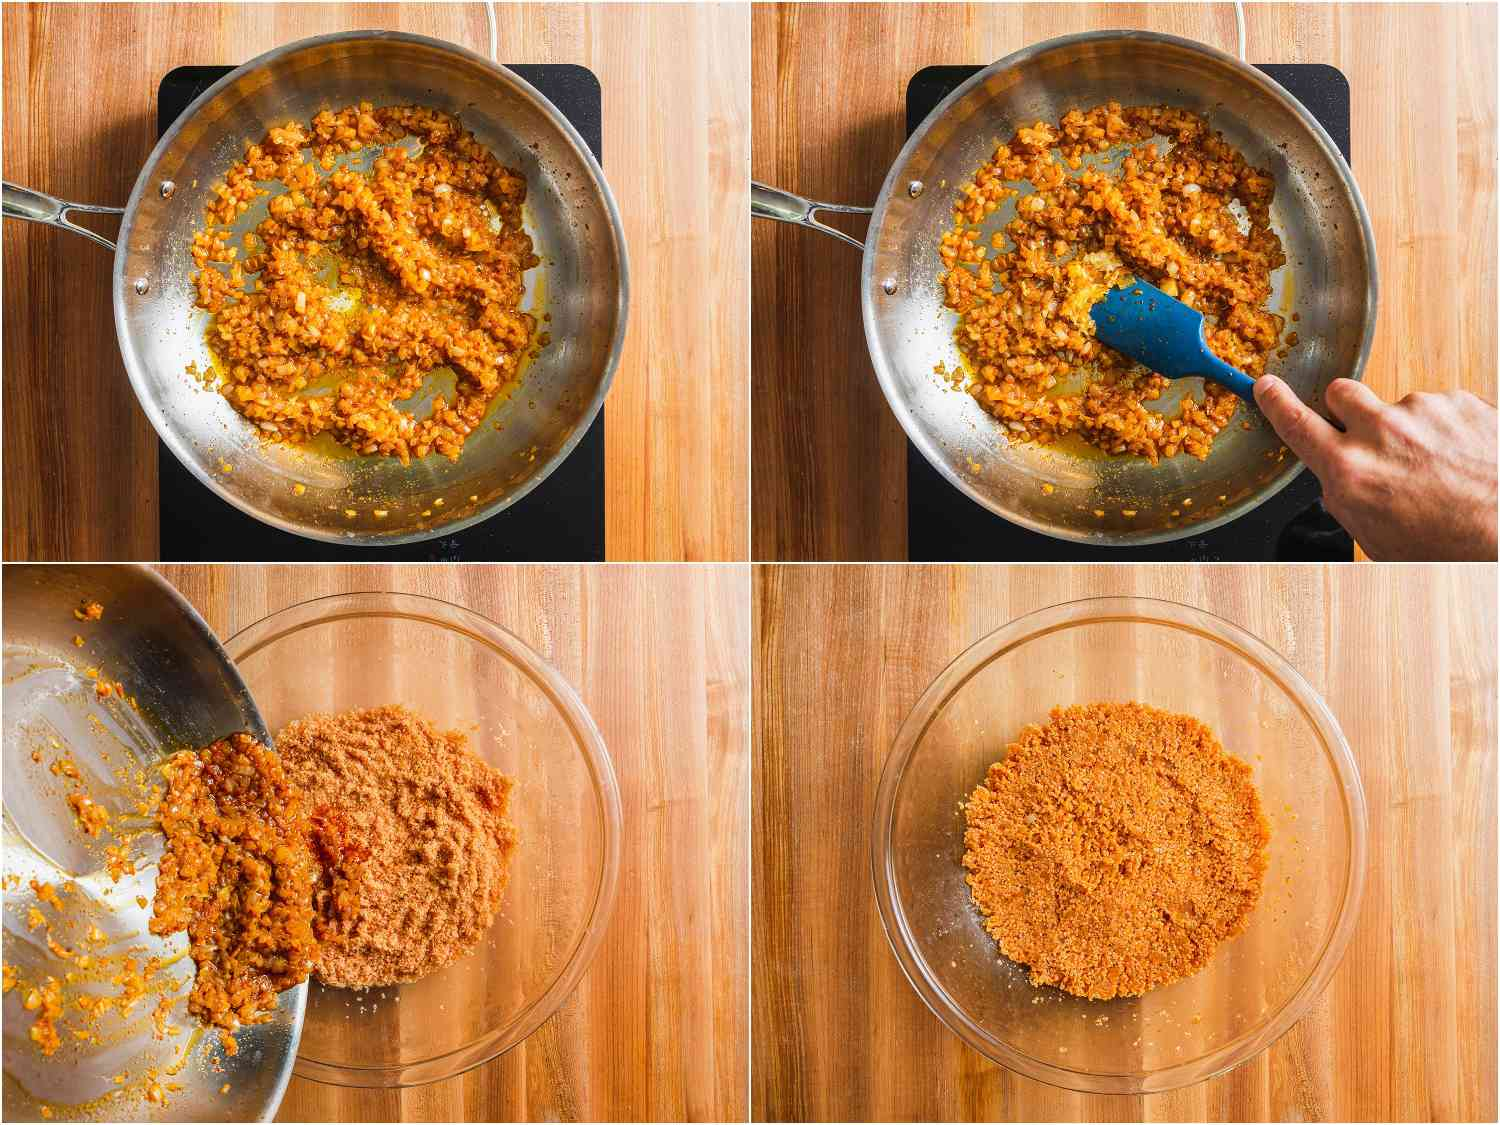 Cooking aromatics with Aleppo pepper and adding to hydrated bulgur.